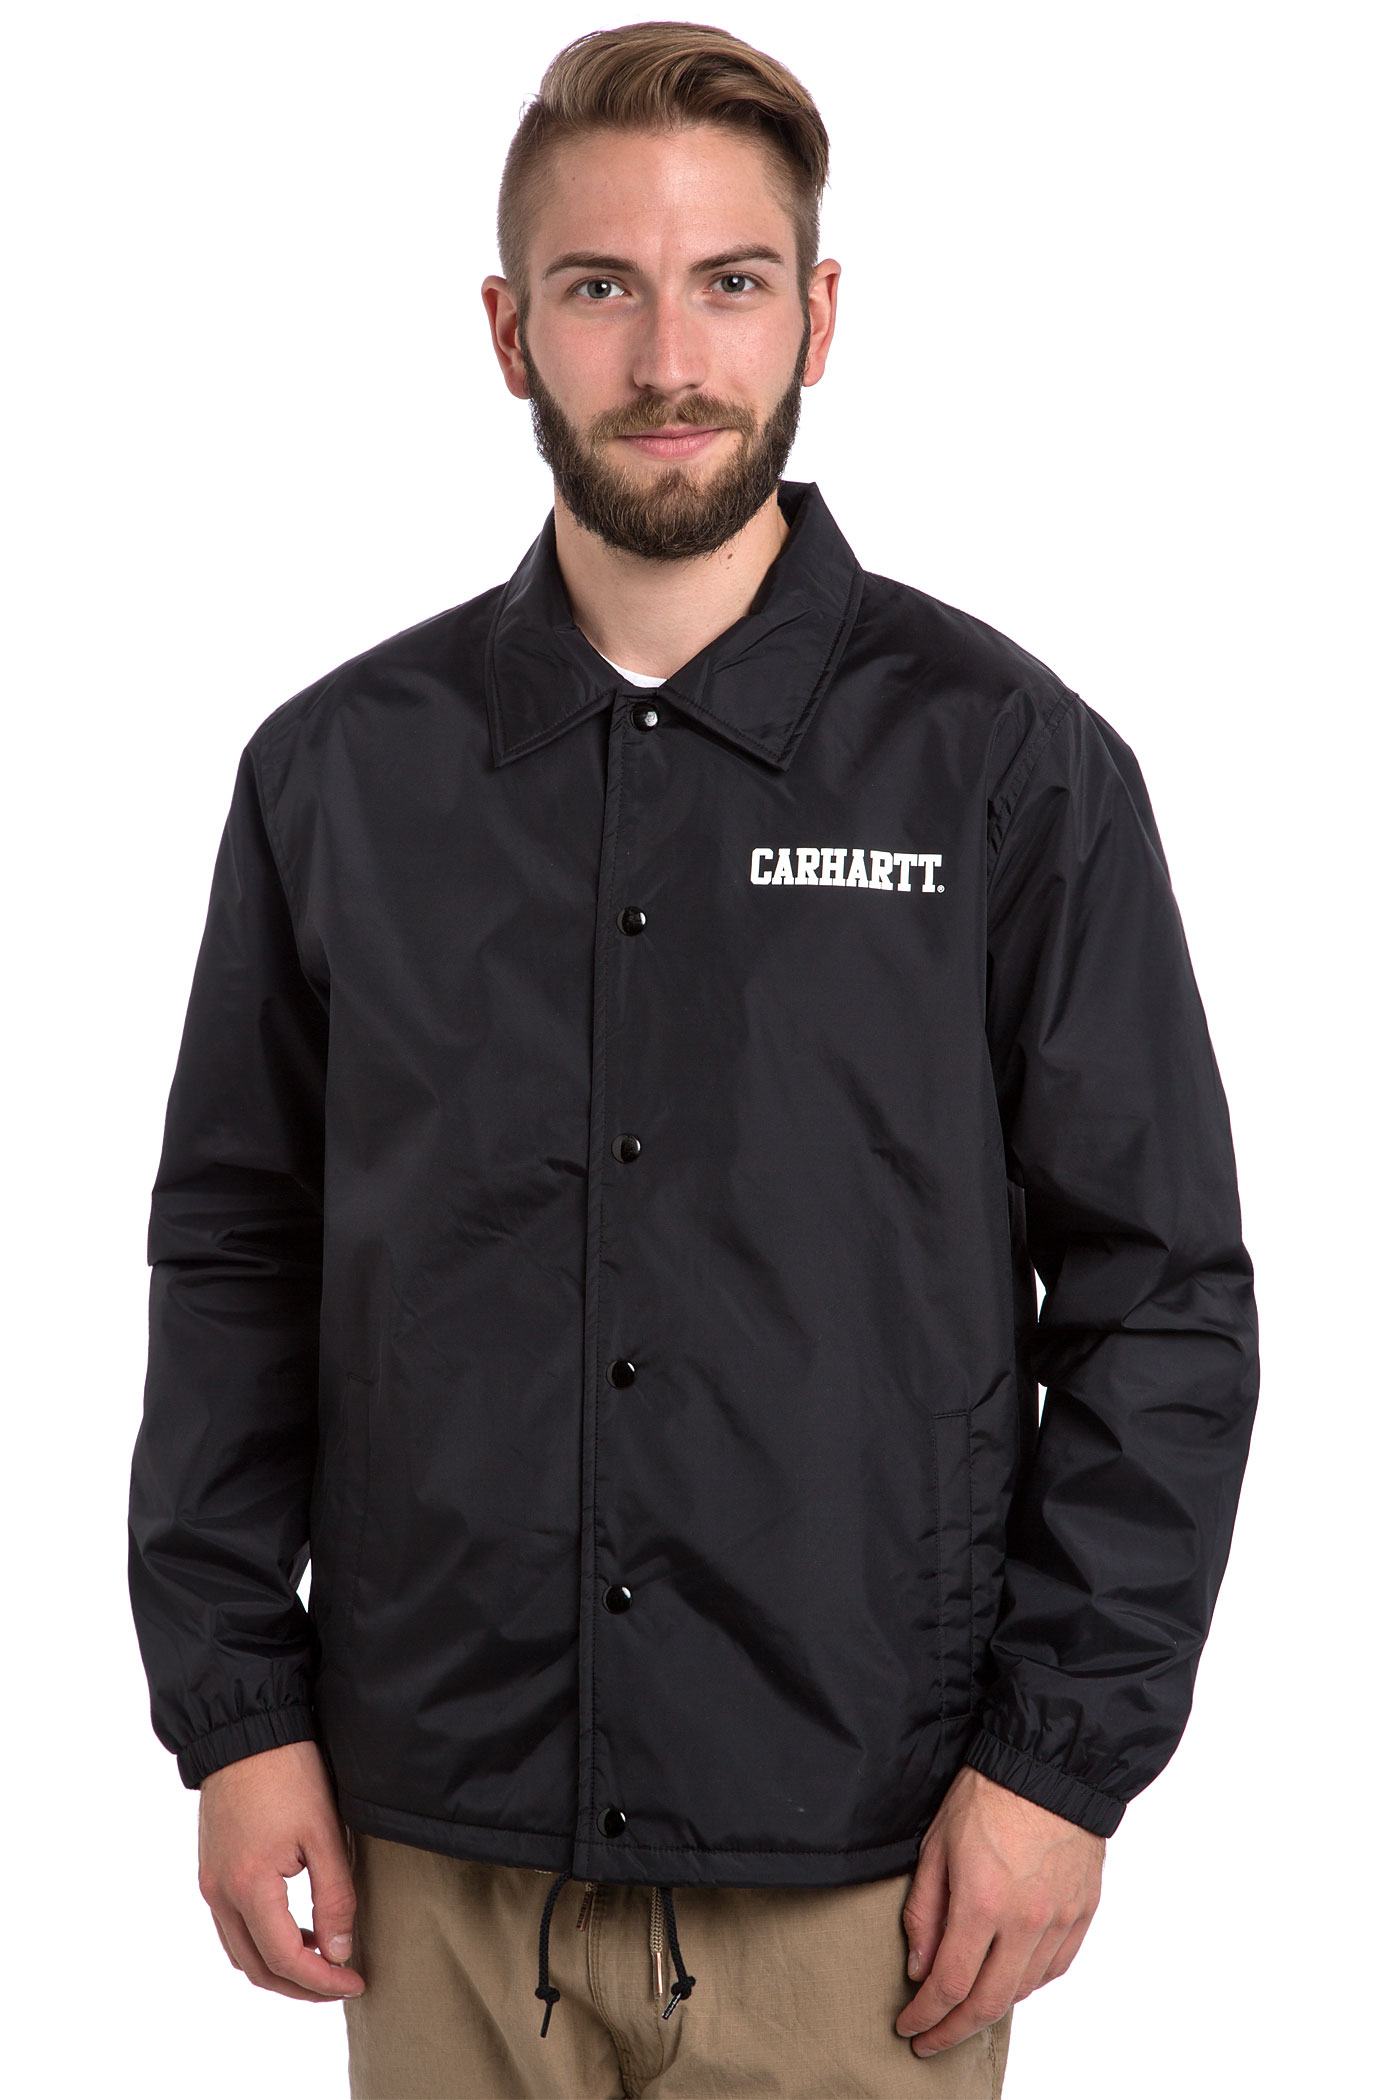 Carhartt wip college coach jacket black white buy at for Coach jacket